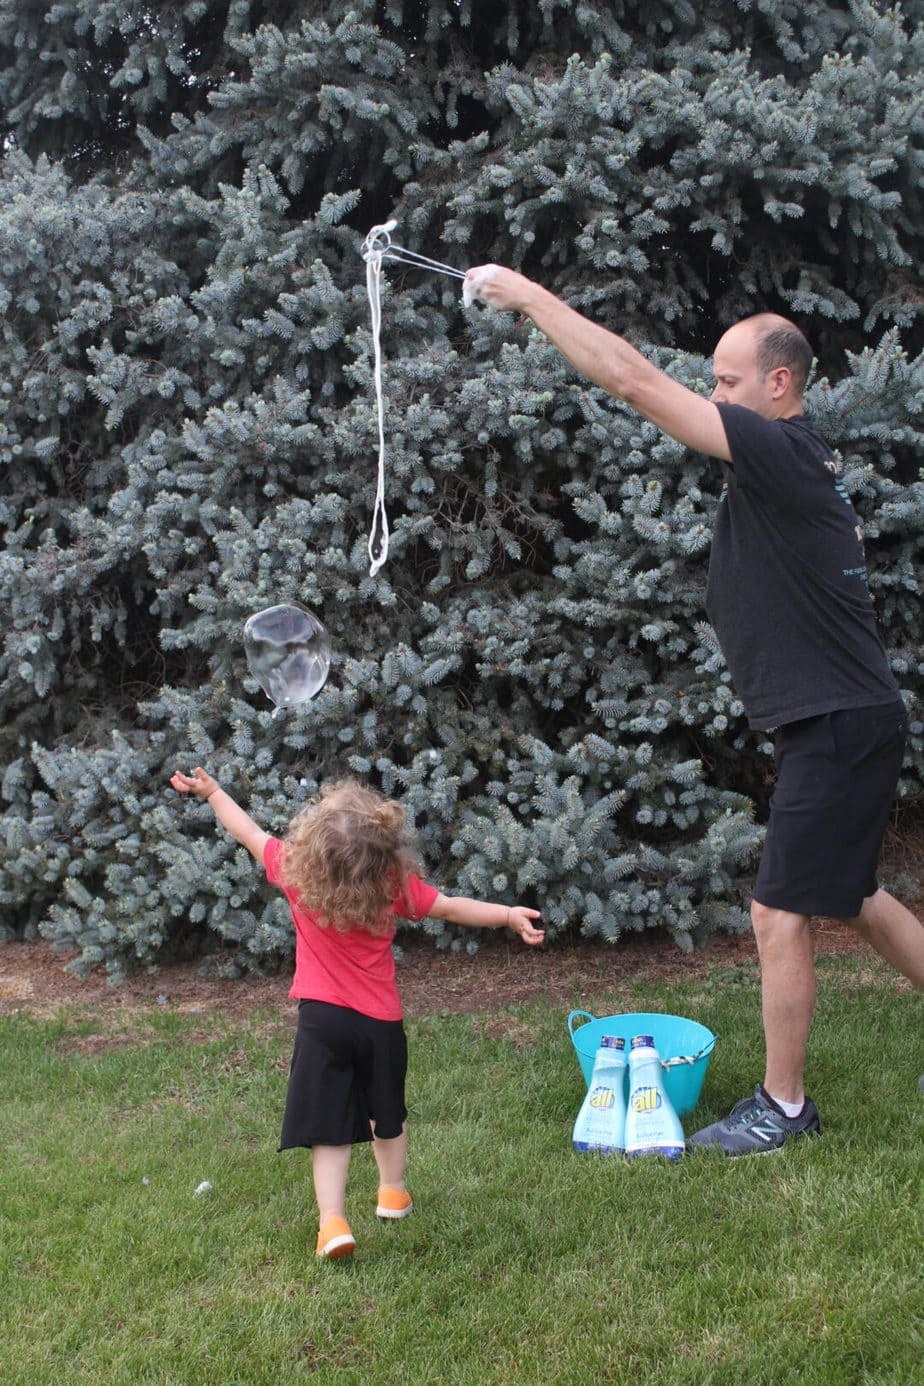 Toddler girl popping giant bubble with dad in front of a pine tree.